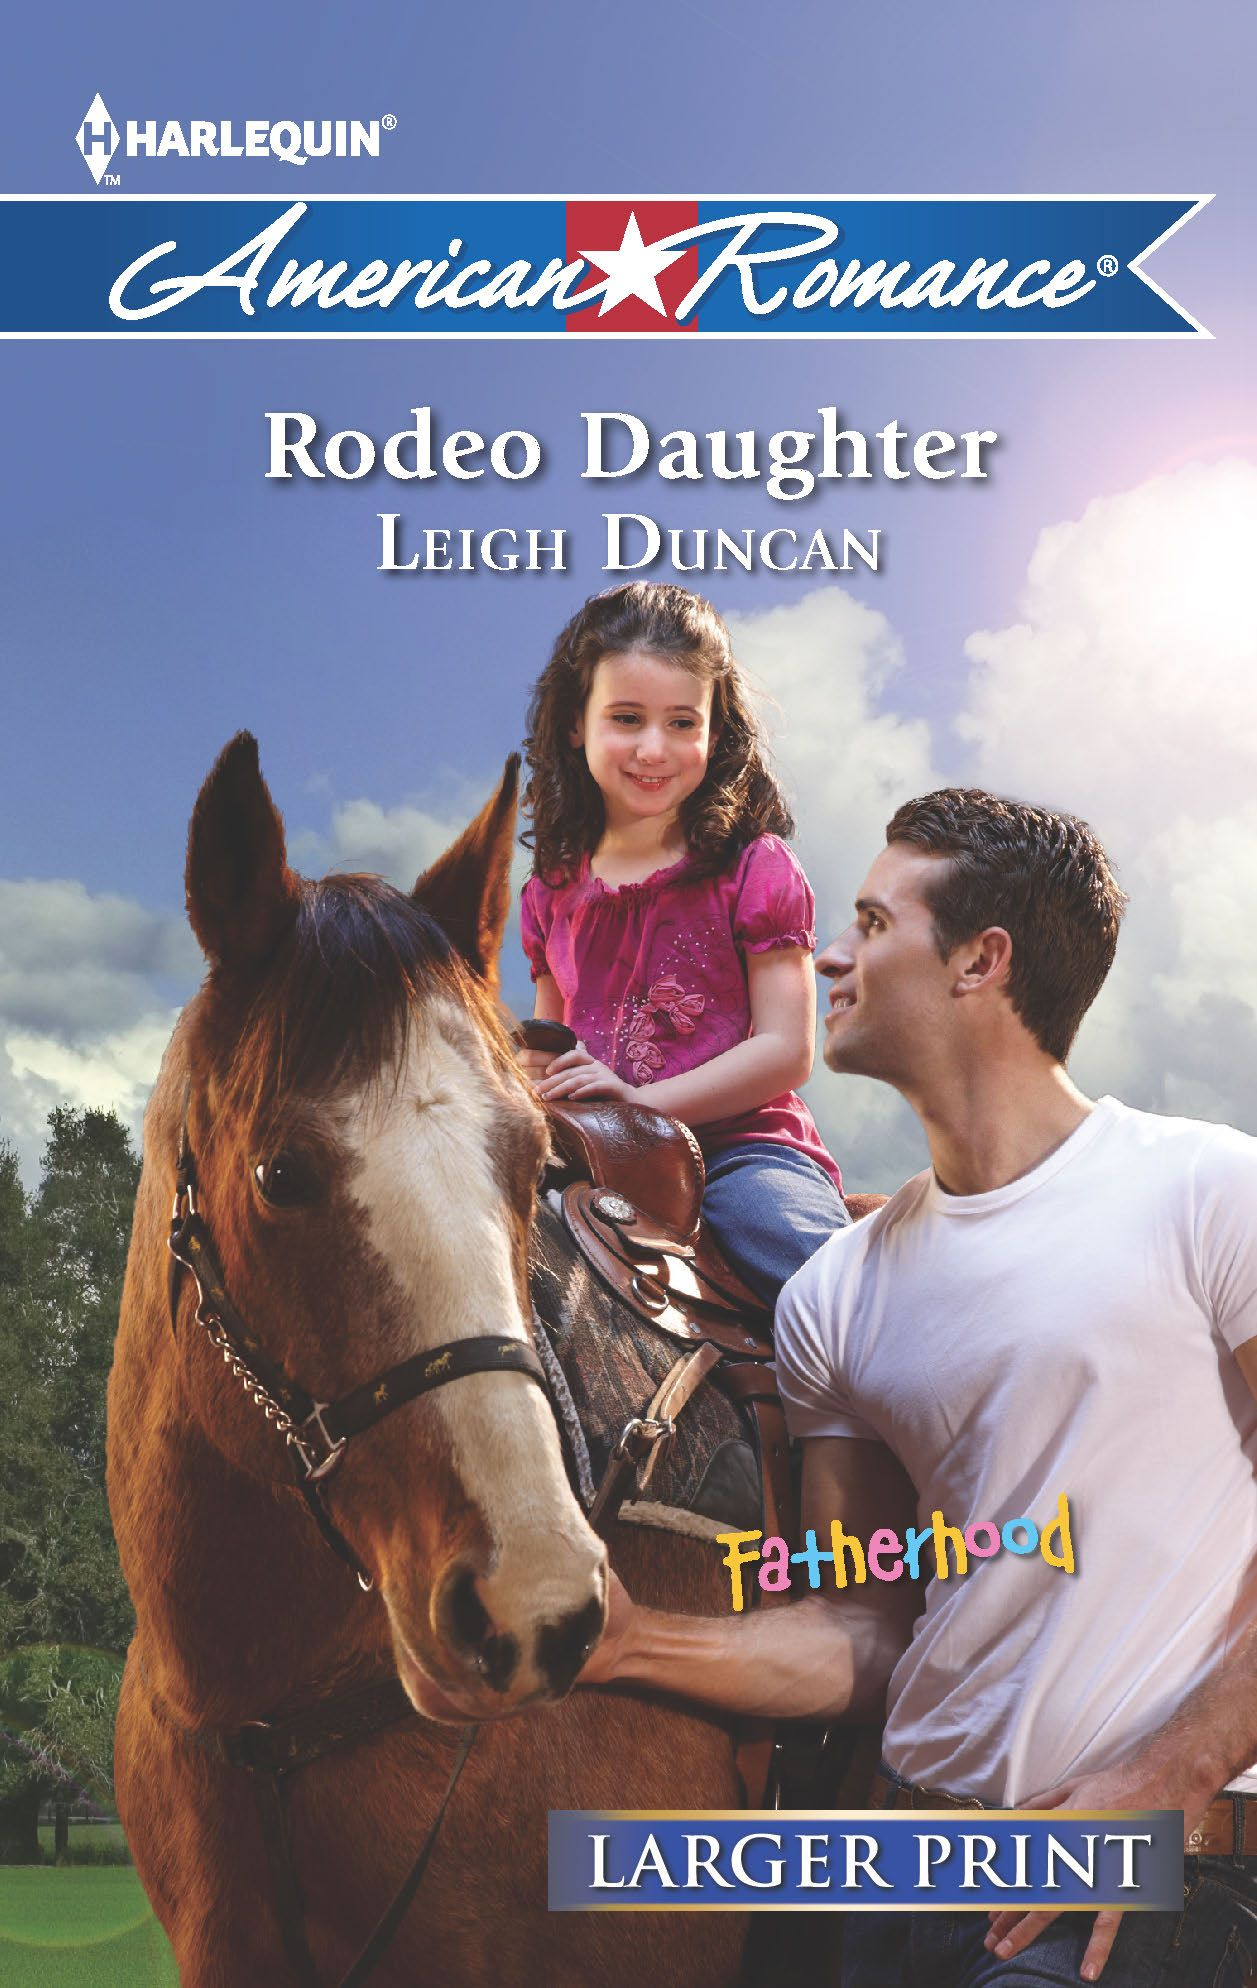 Cover of Larger Print edition of Rodeo Daughter.